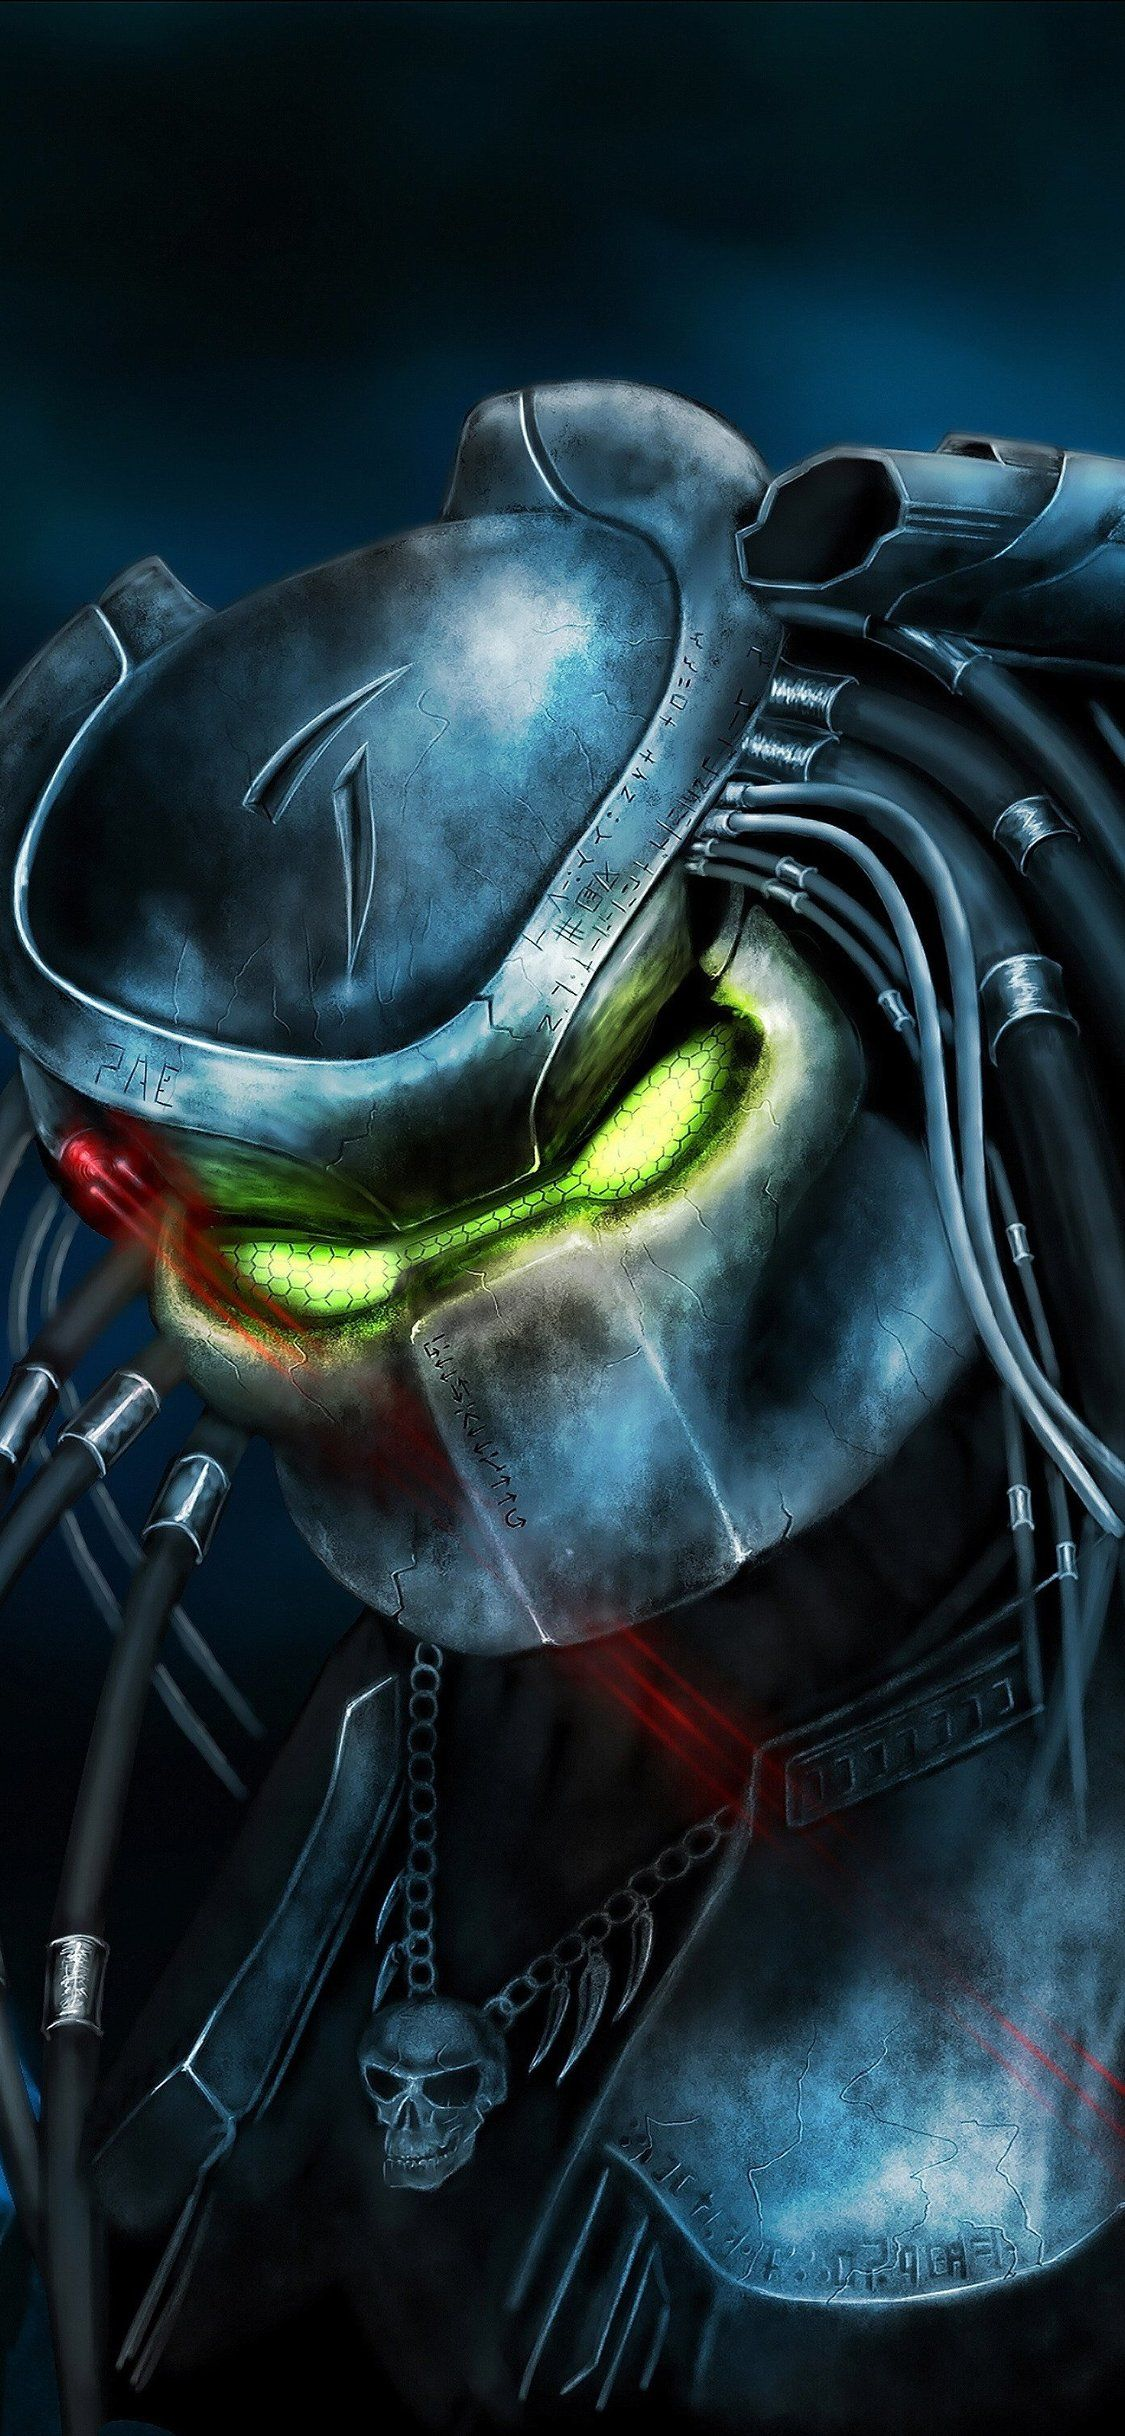 The Predator Artwork Iphone X Artwork, Predator, Iphone